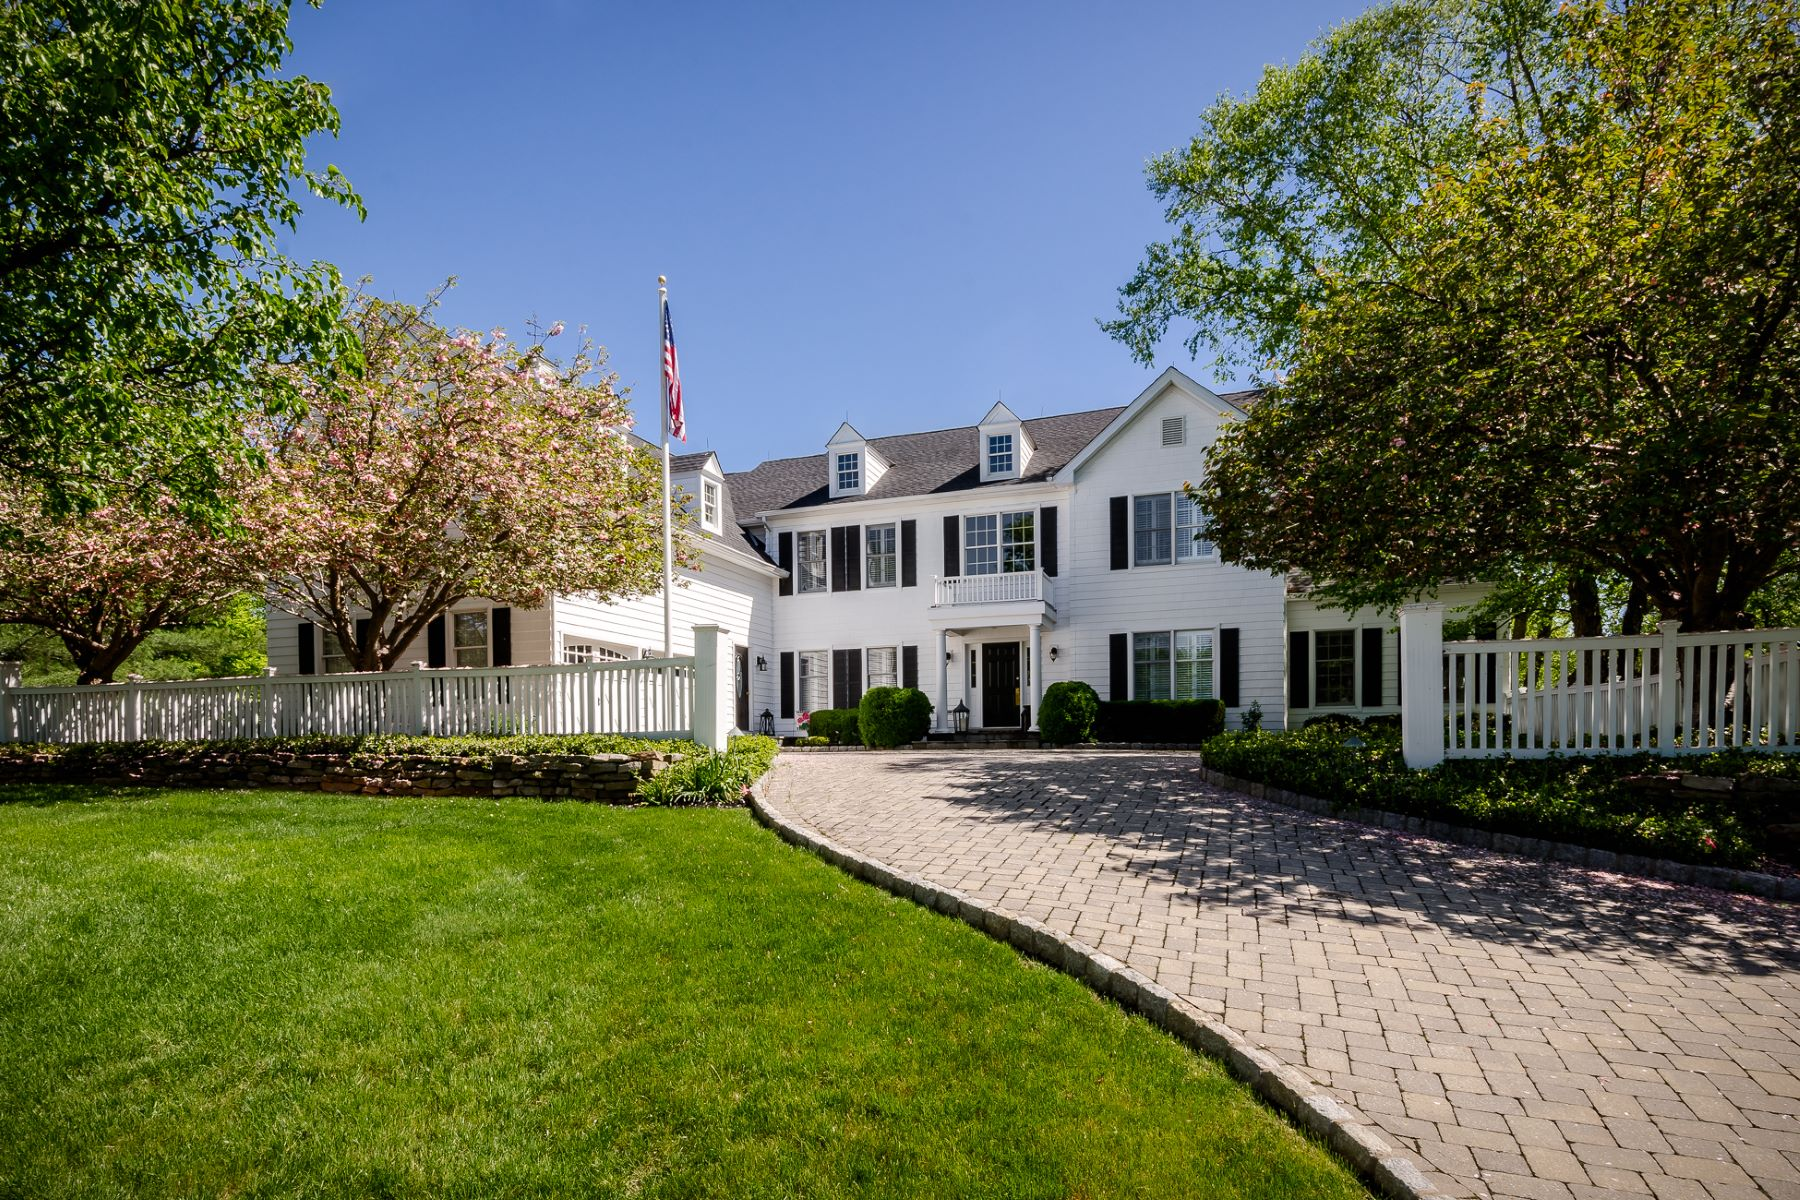 Property للـ Sale في Nantucket Style At Every Turn 37 Blue Heron Way, Skillman, New Jersey 08558 United States